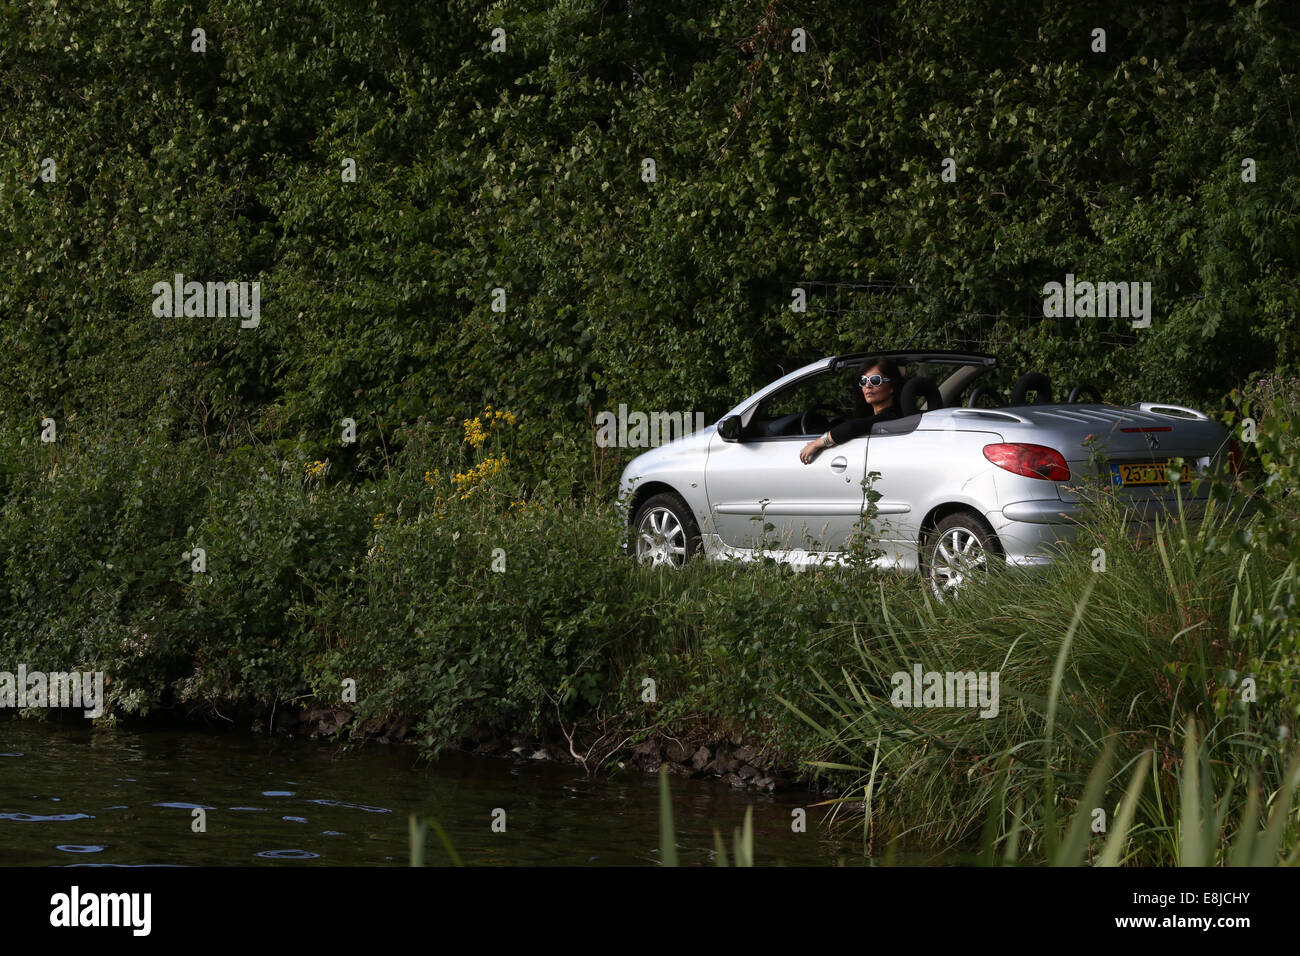 Driving a Peugeot 206 convertible. - Stock Image